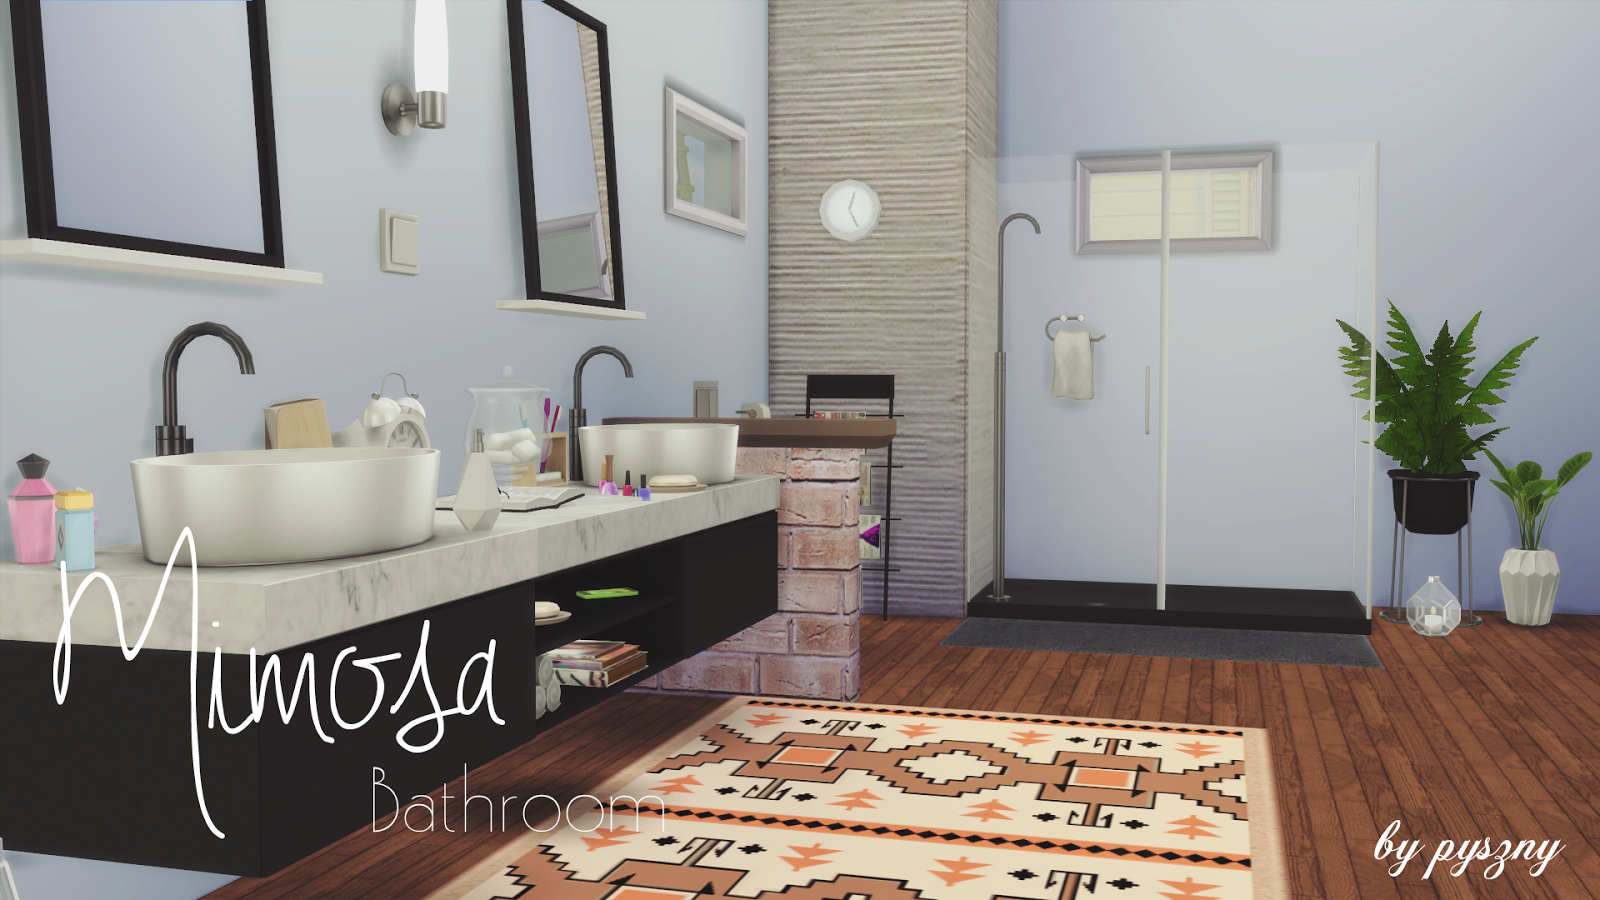 My Sims 4 Blog: Mimosa Bathroom Set By Pyszny